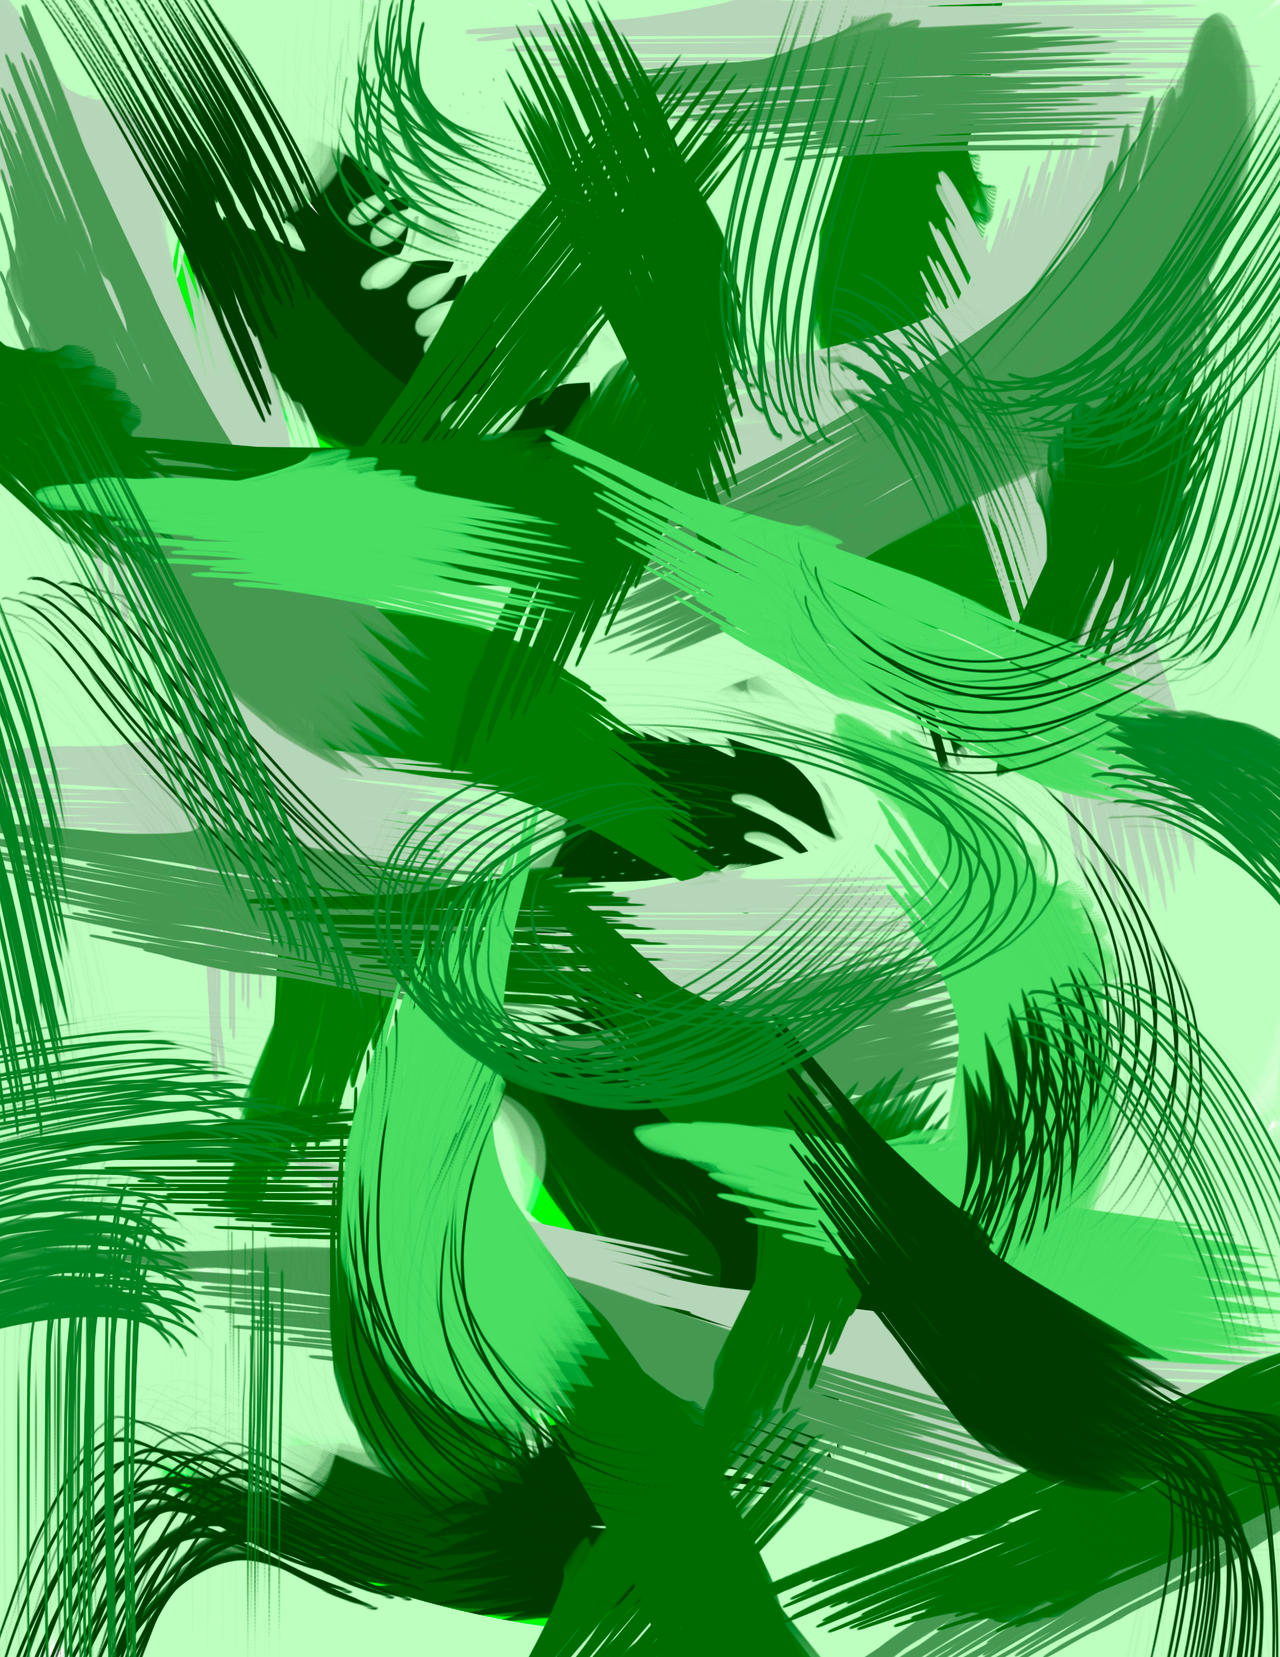 Sin Titulo #5 Digital Brush 2020 series